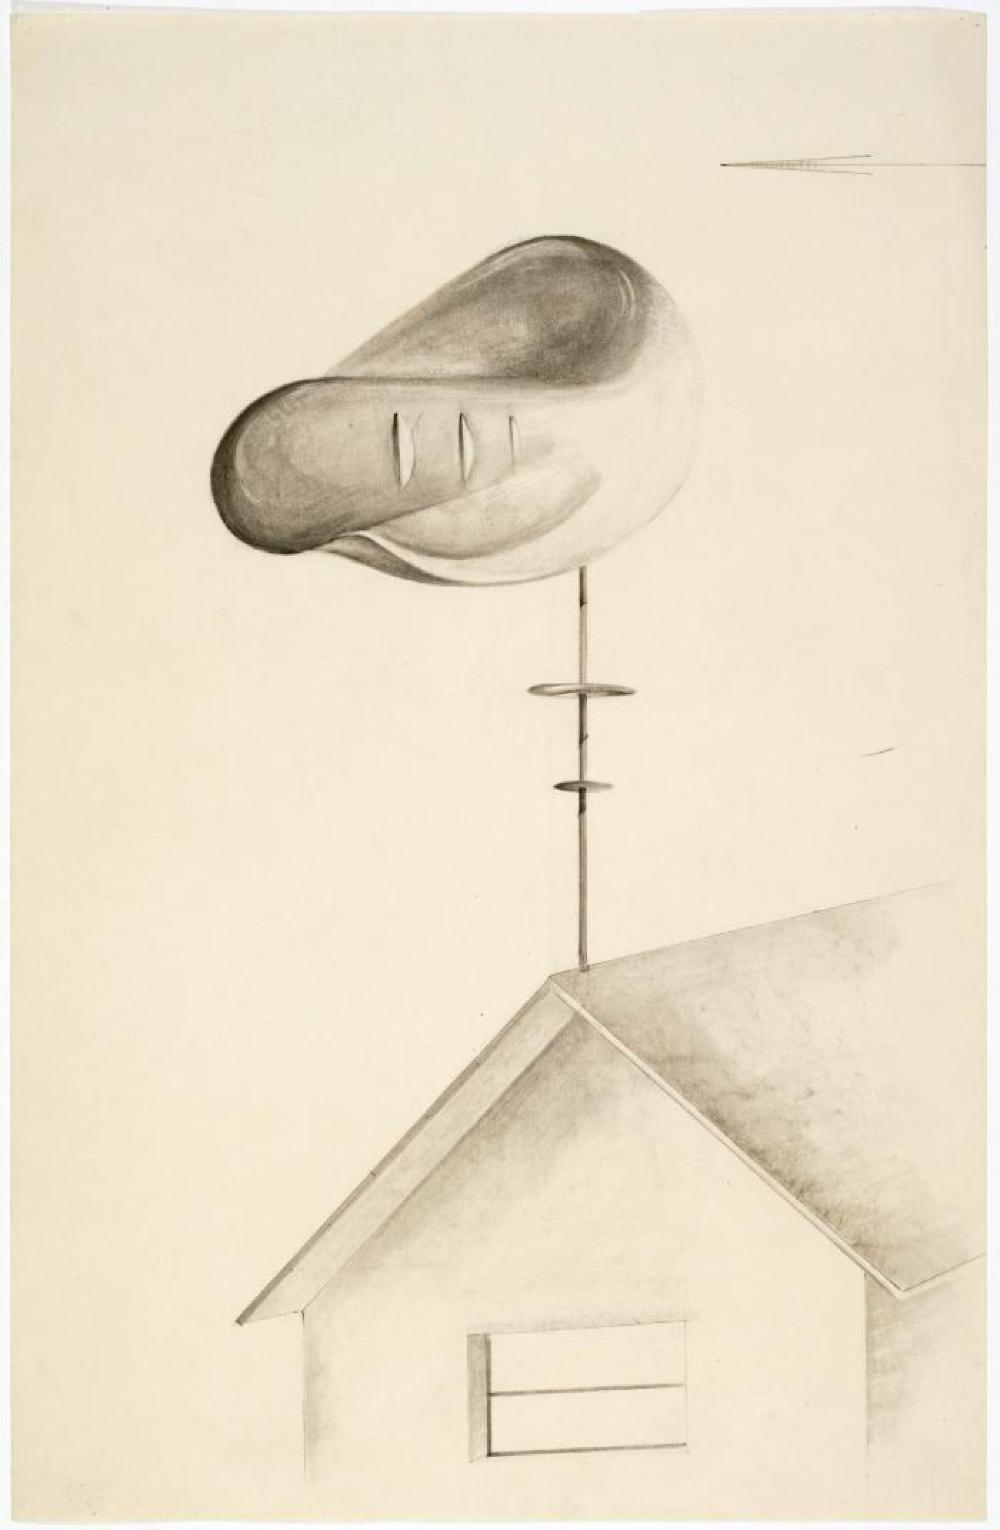 Study for Musical Weathervane